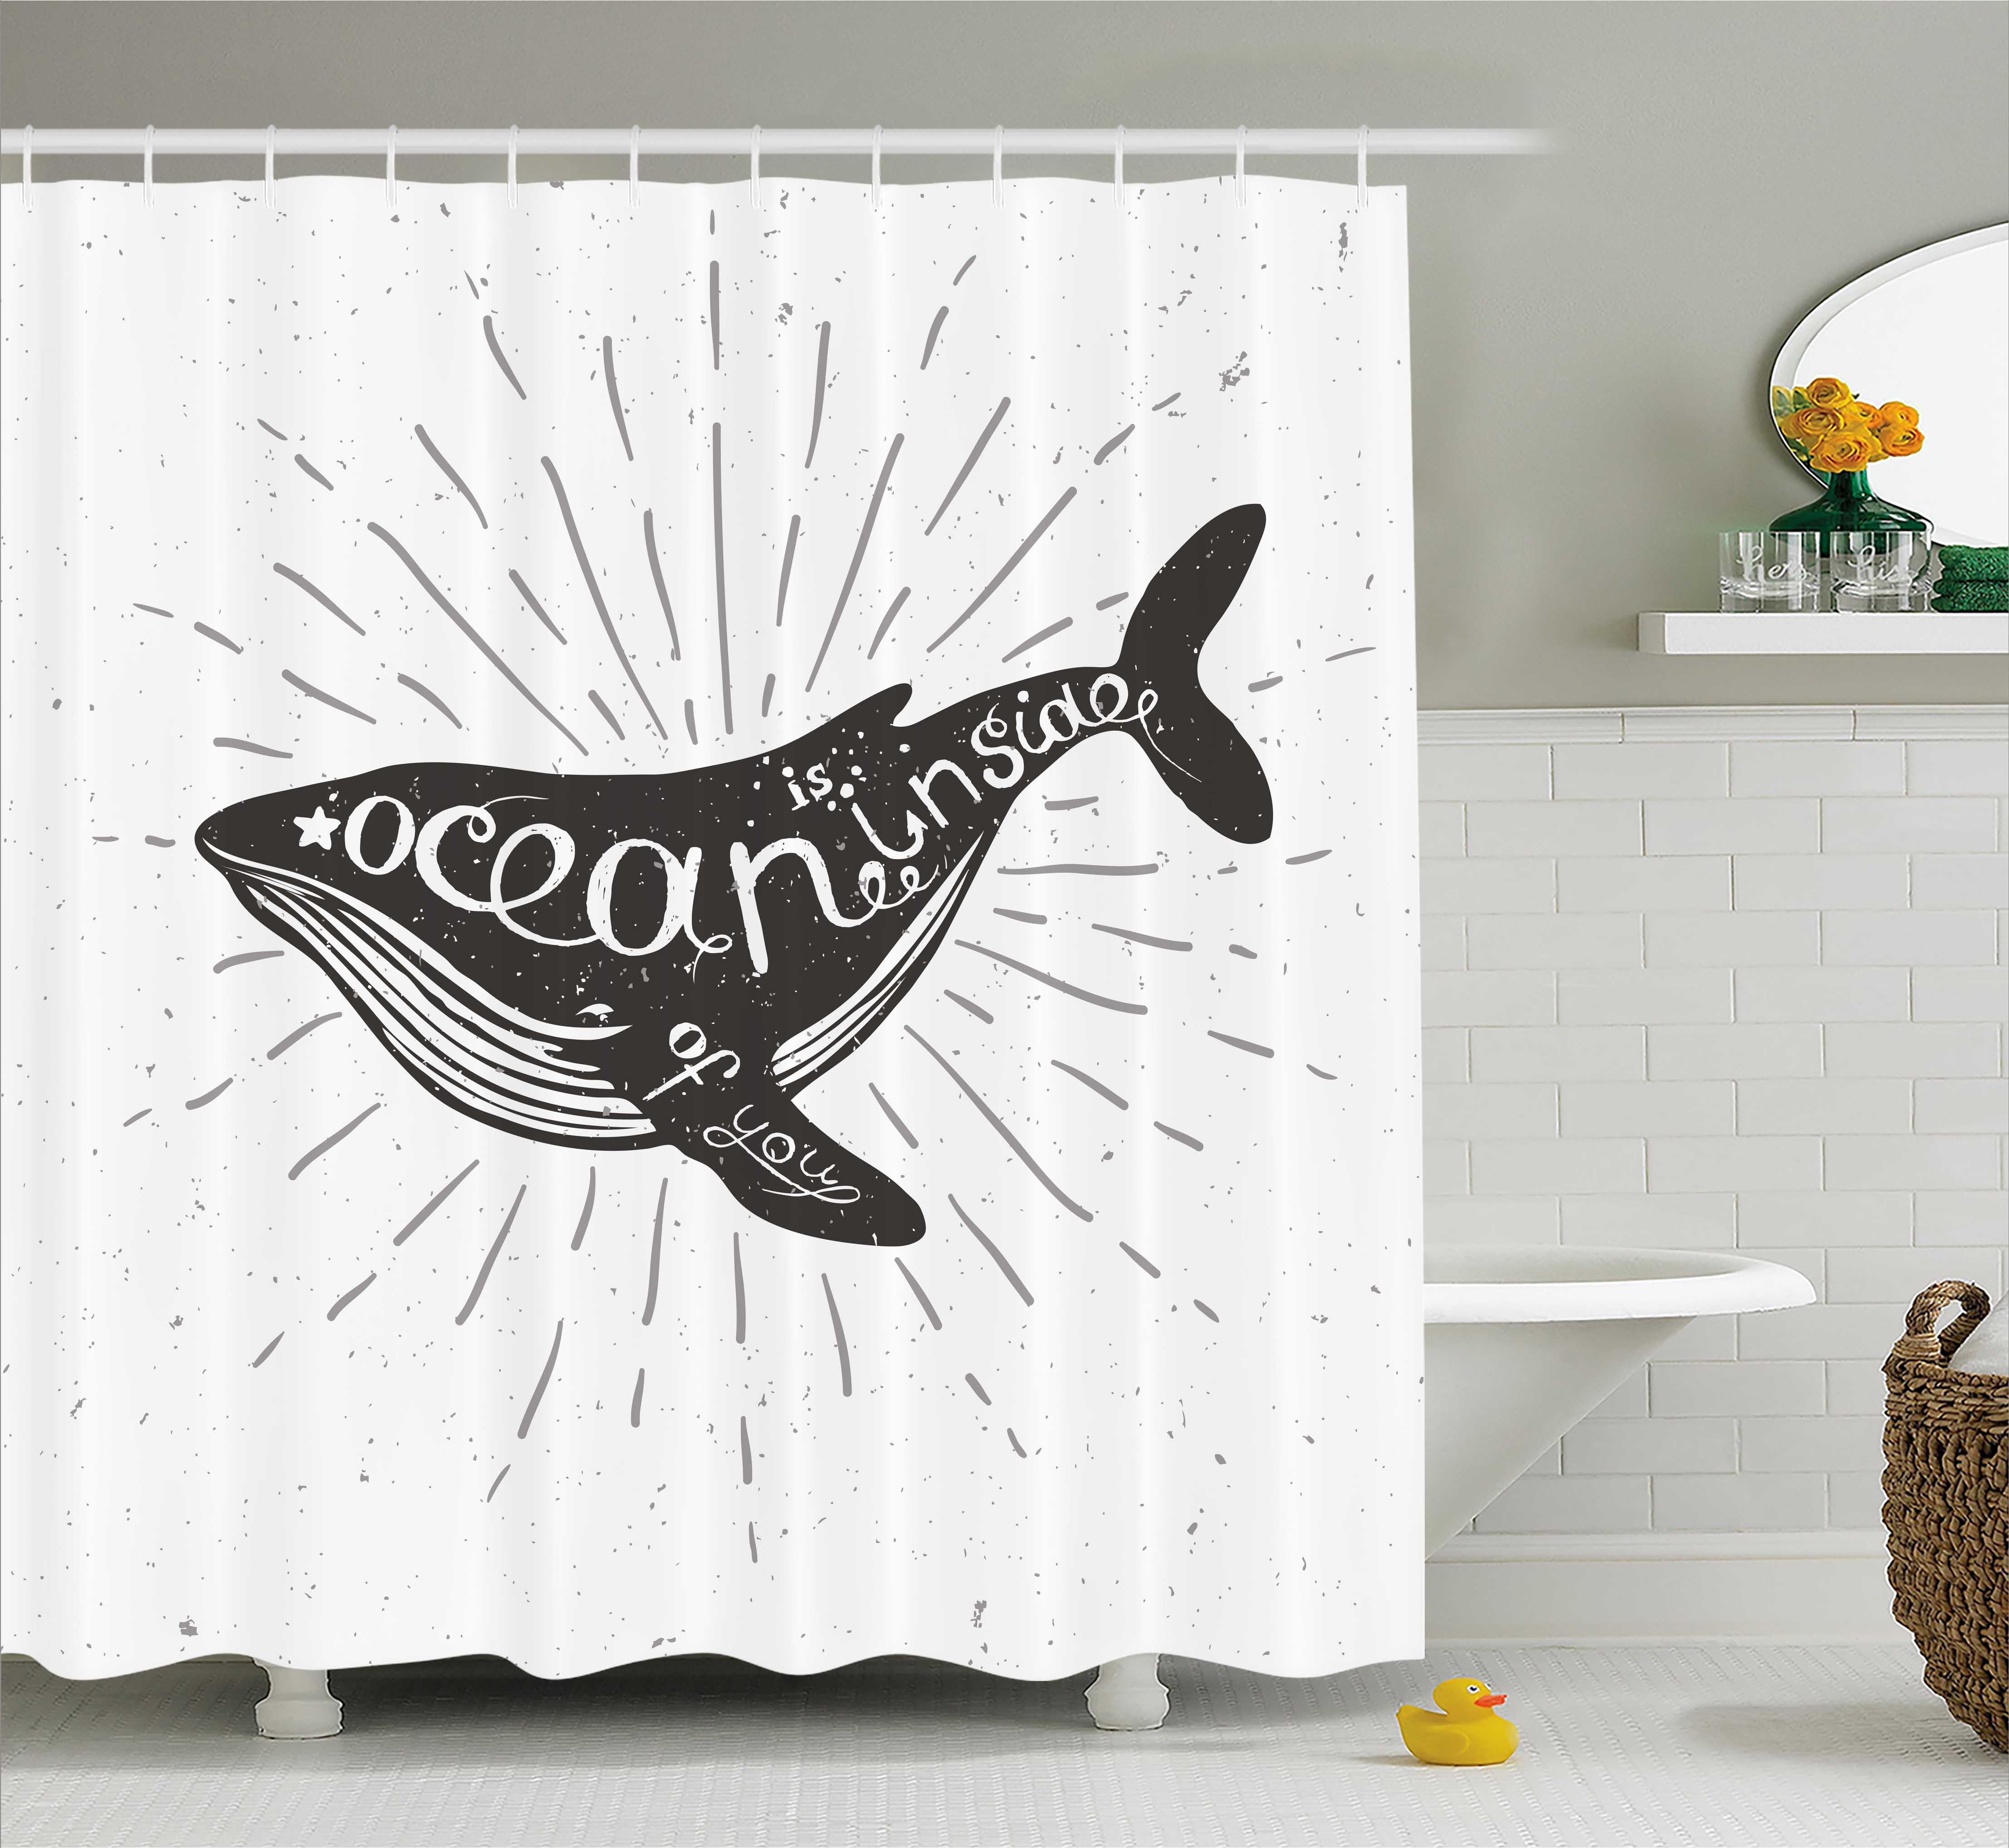 Whale Shower Curtain, Ocean Inside Of You Inspirational Typography With Big  Fish Grunge Illustration,